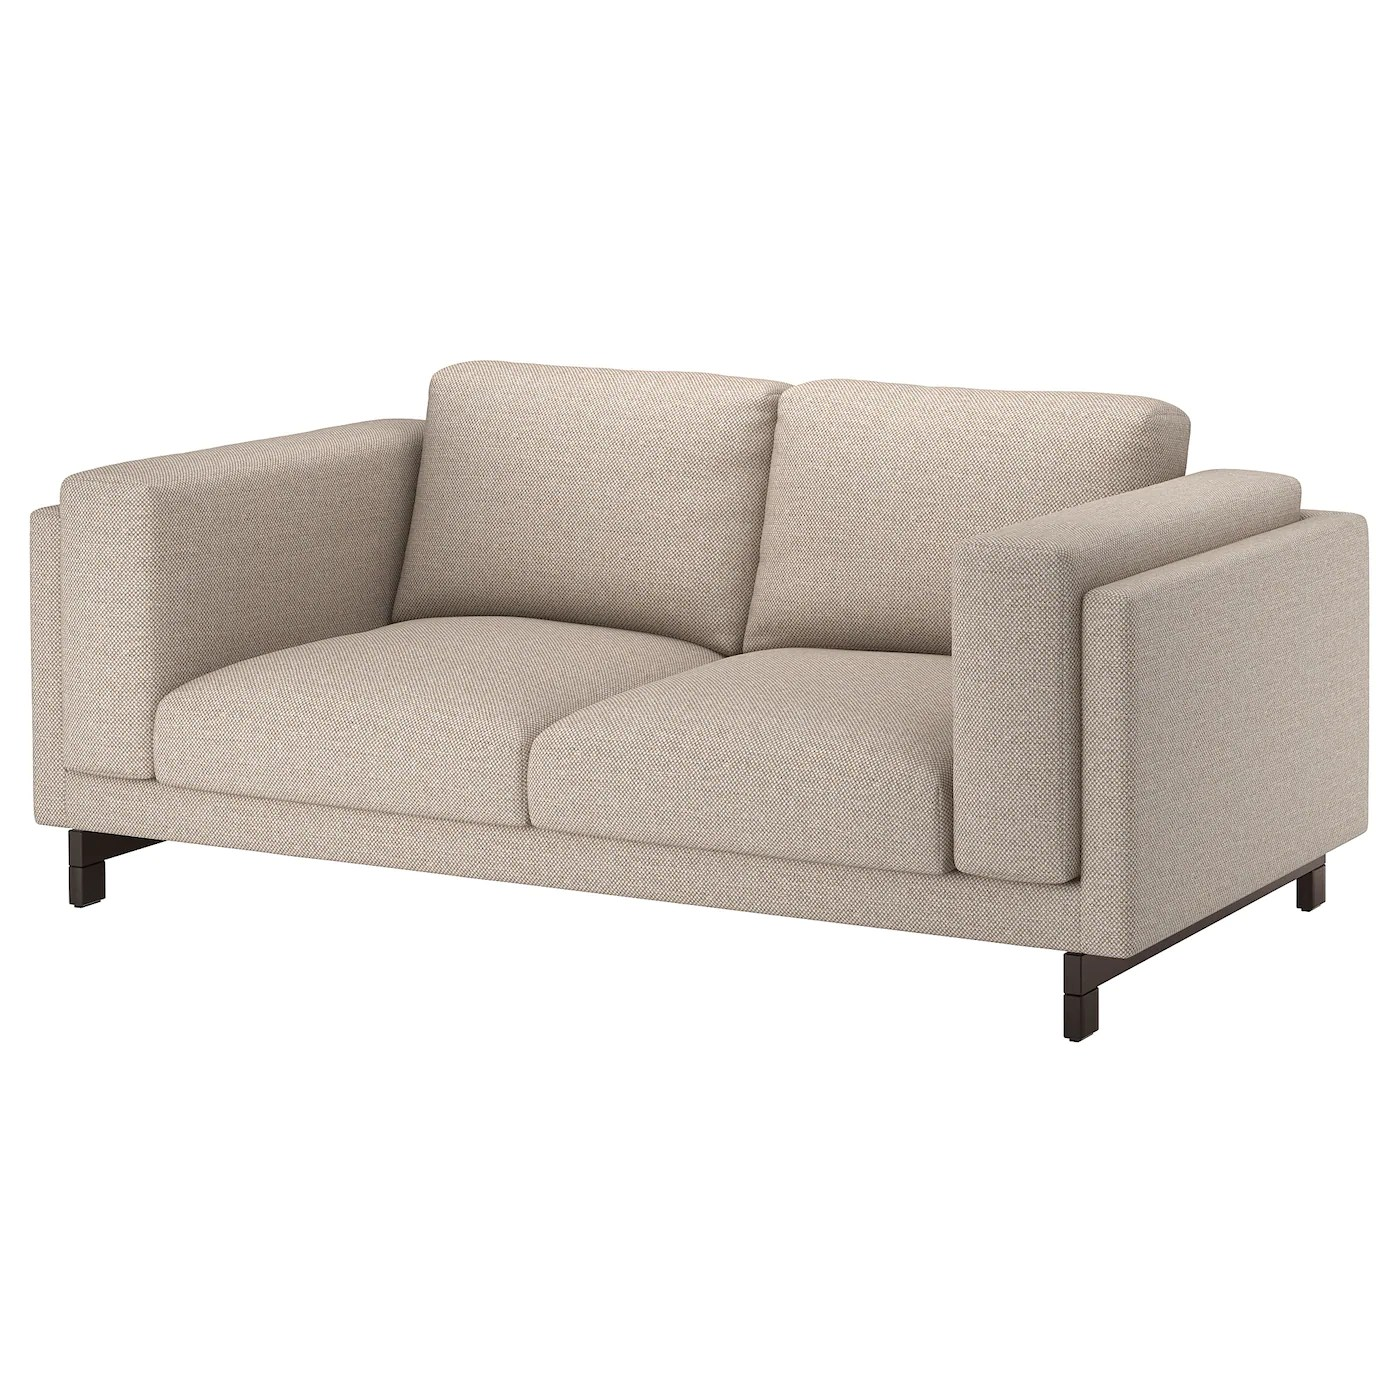 Sofa Uk Ikea Small Sofa 2 Seater Sofa Ikea